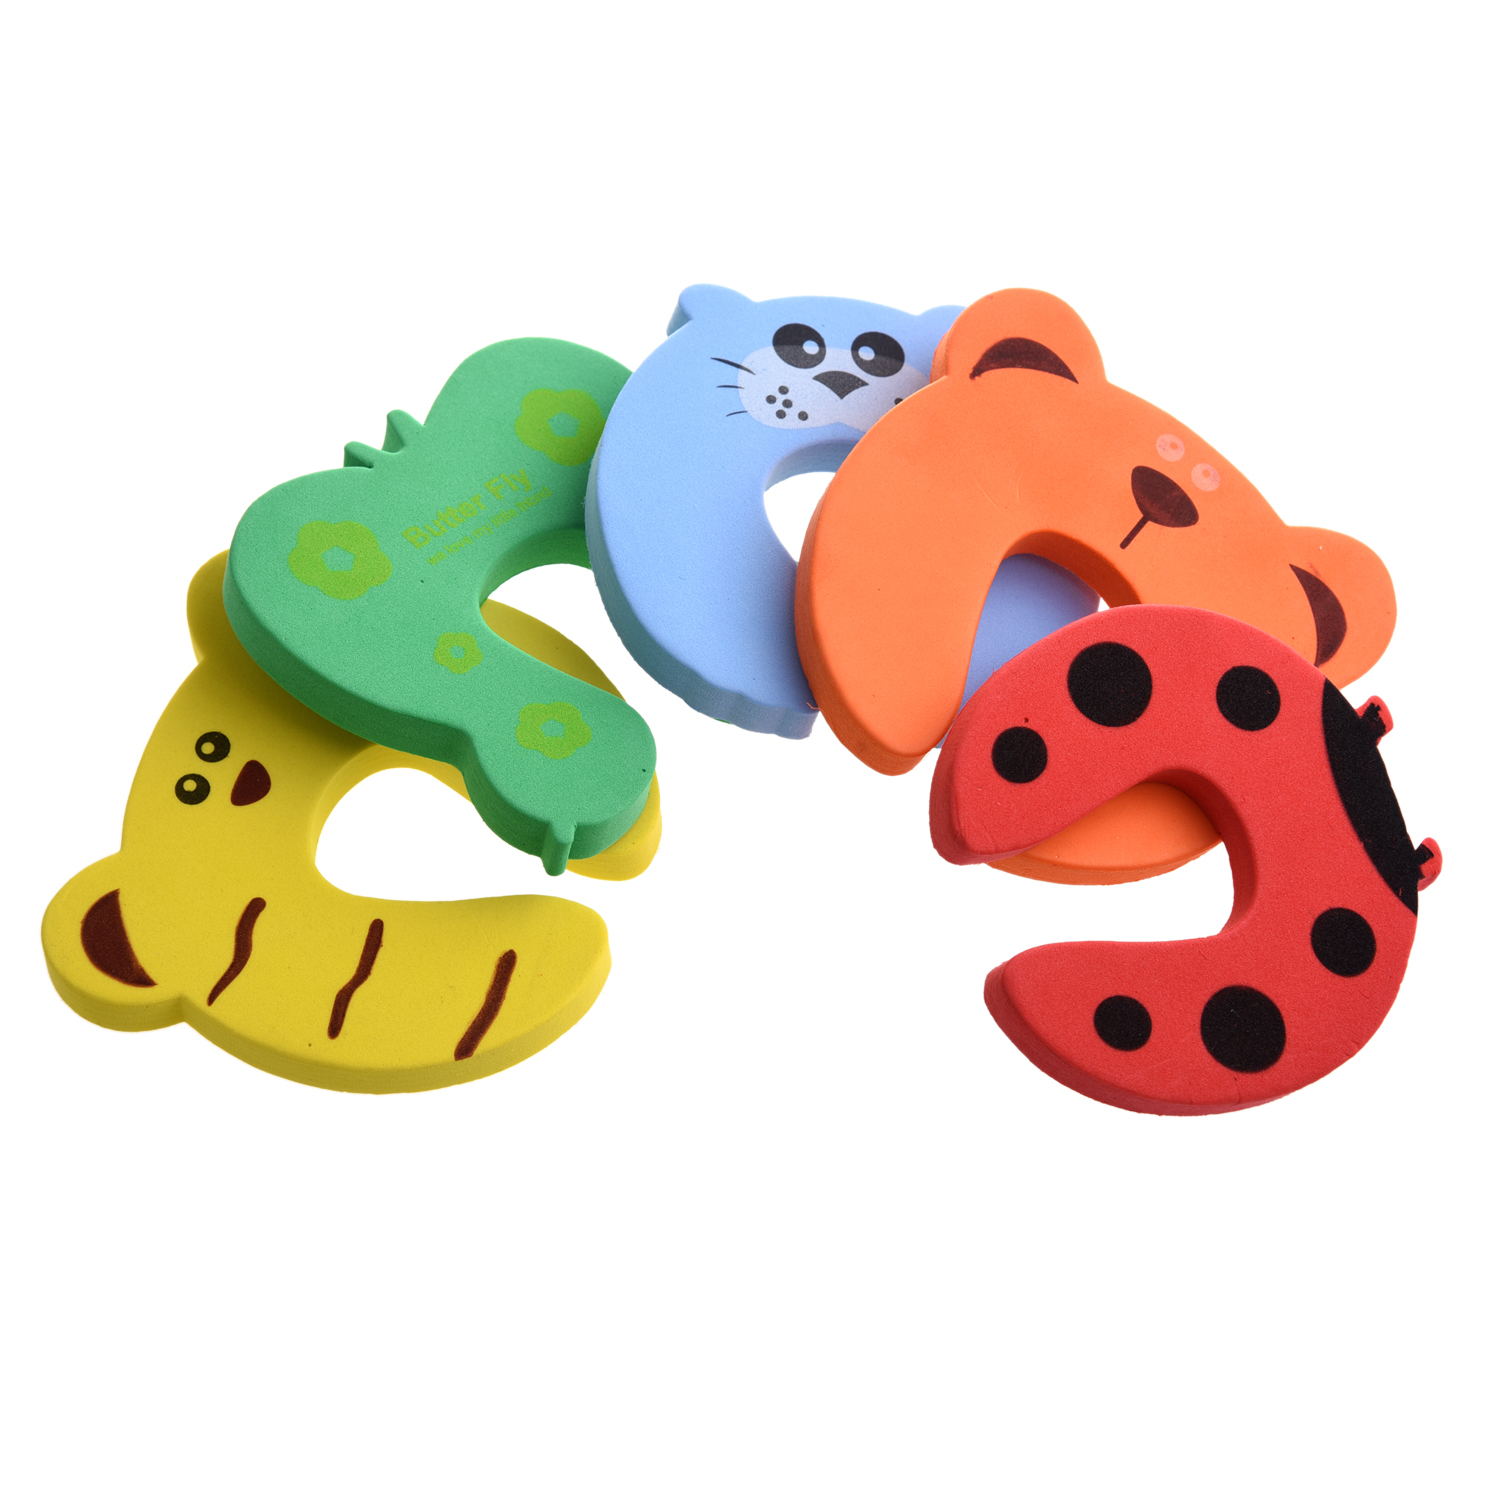 Wholesale 5x Baby Kids Door Jammer Finger Pinch Guard Child Toddler Infant Safety Protector Stopper Cute Animal Designs hot sale 4pcs lot cute pack baby safety animal door stop finger pinch guard 18